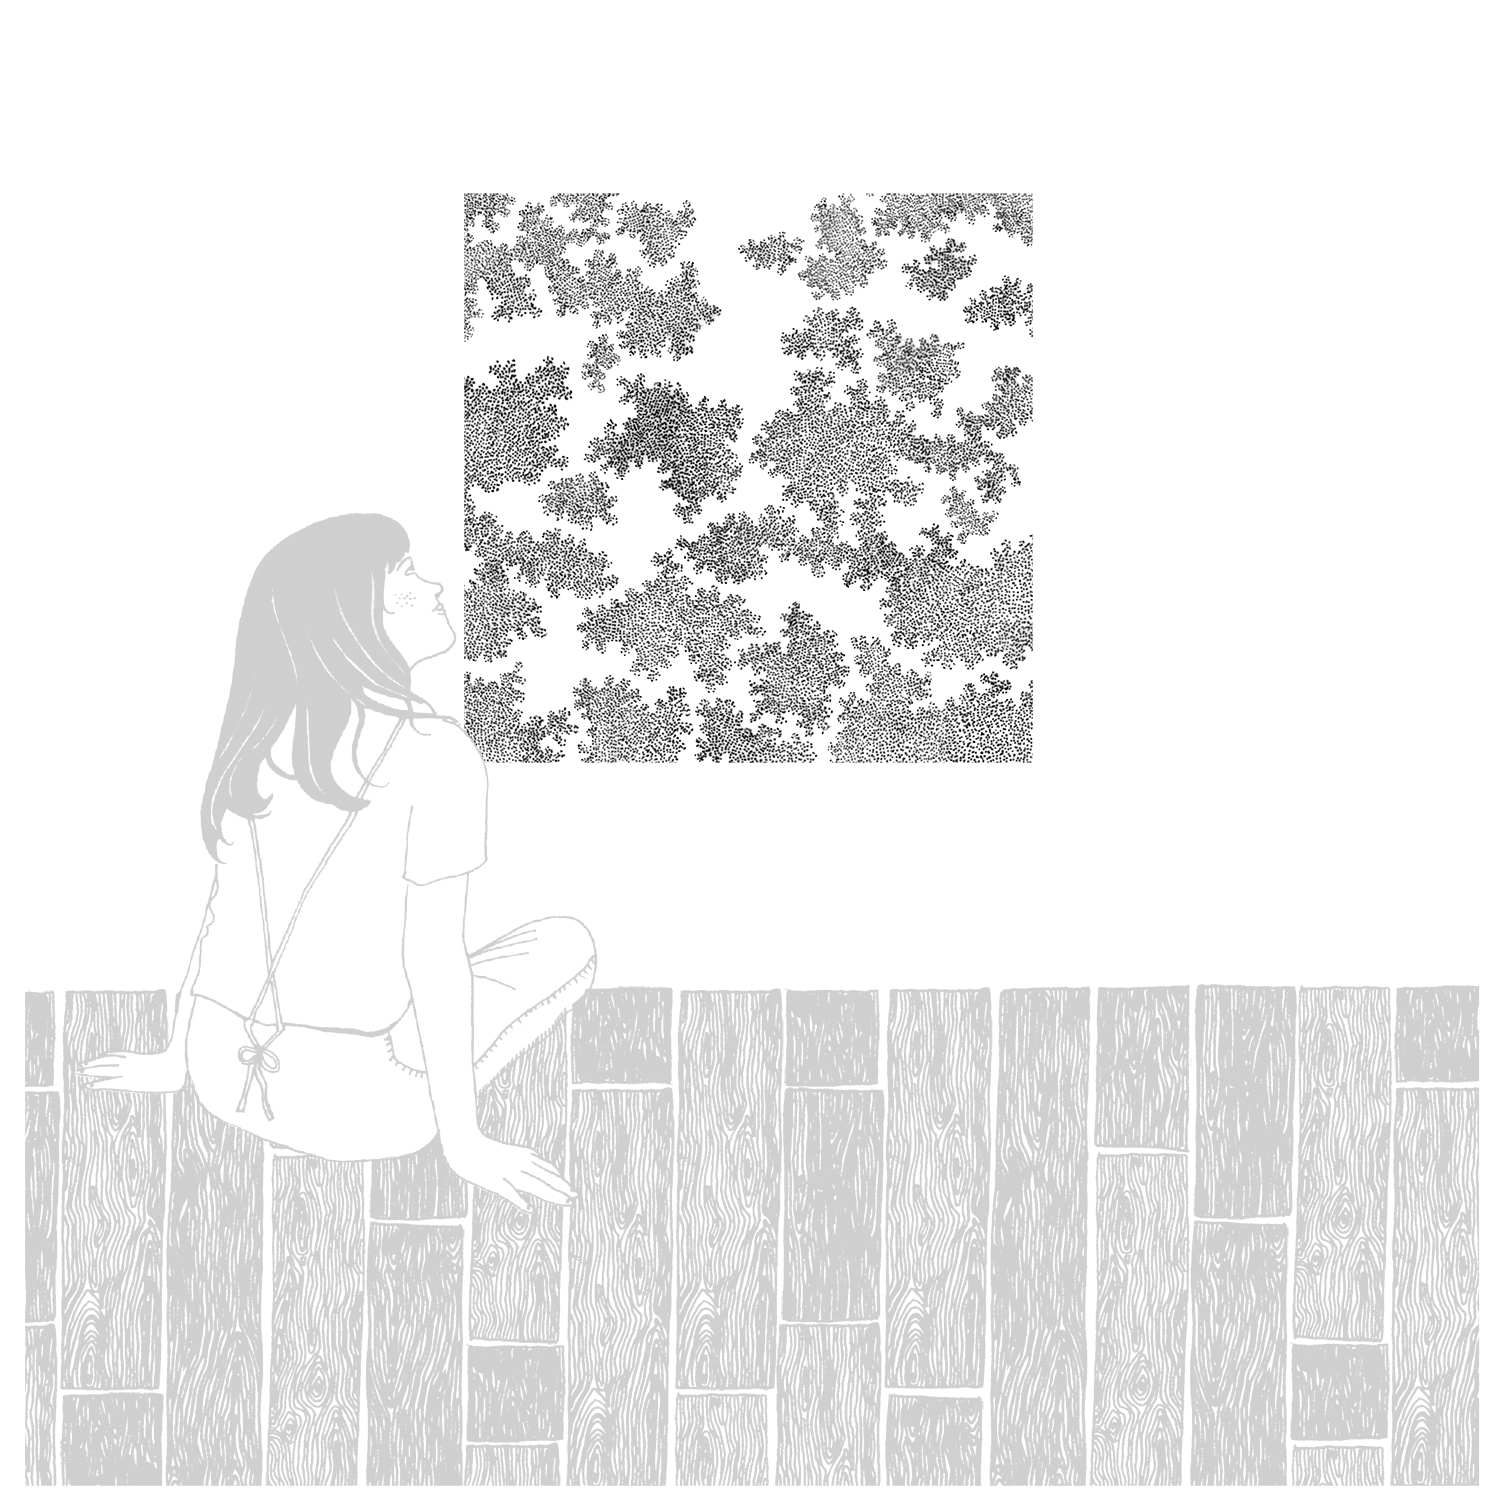 Daita_illustration_window_web